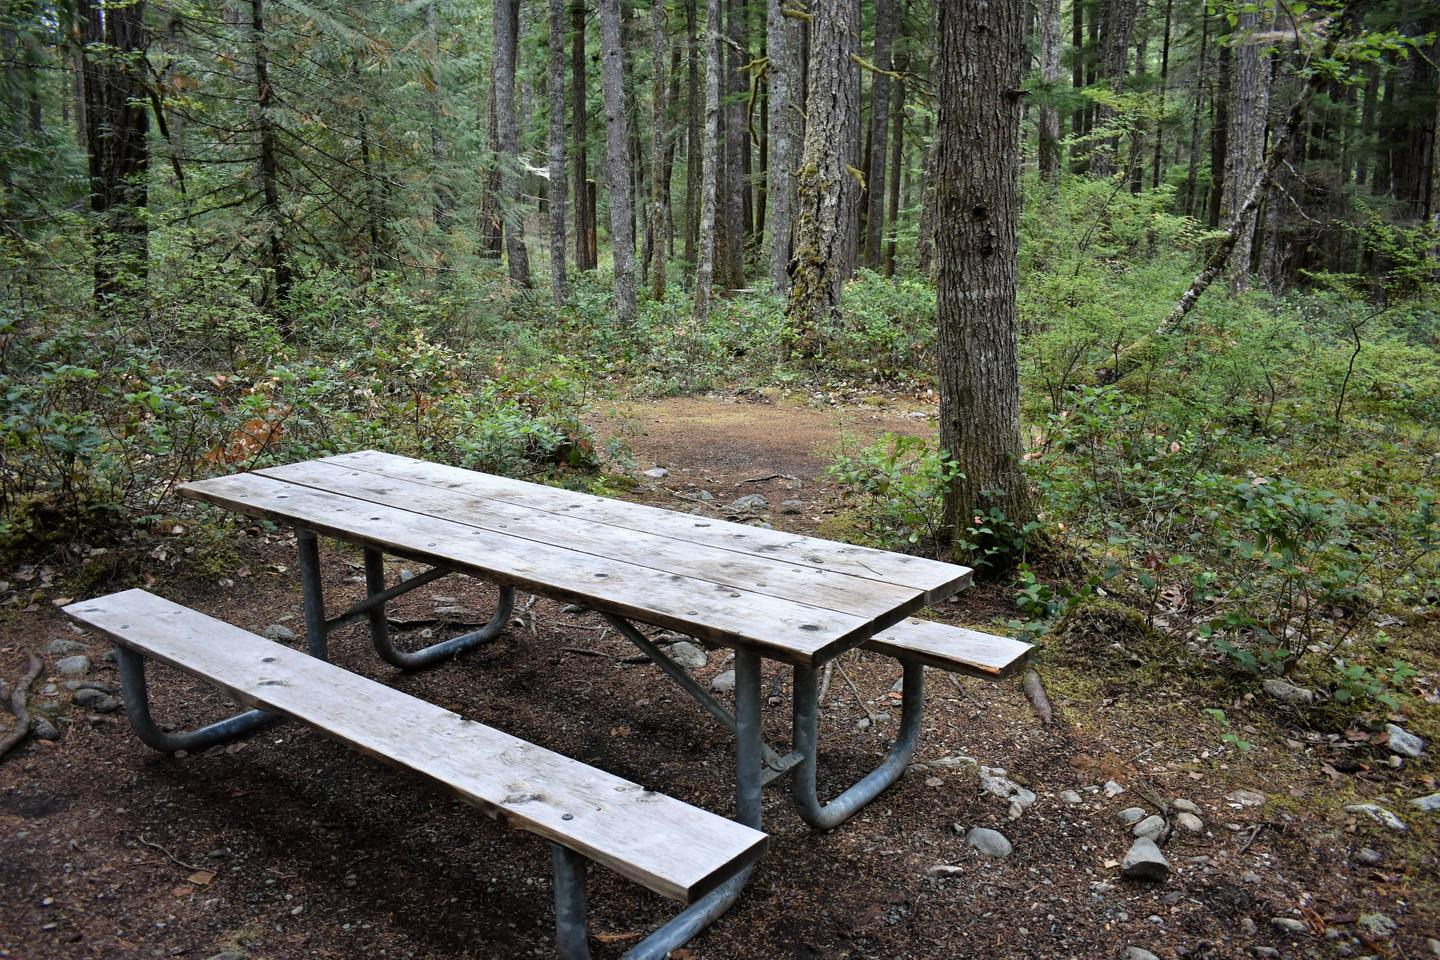 Picnic table and tent areaView of tent area